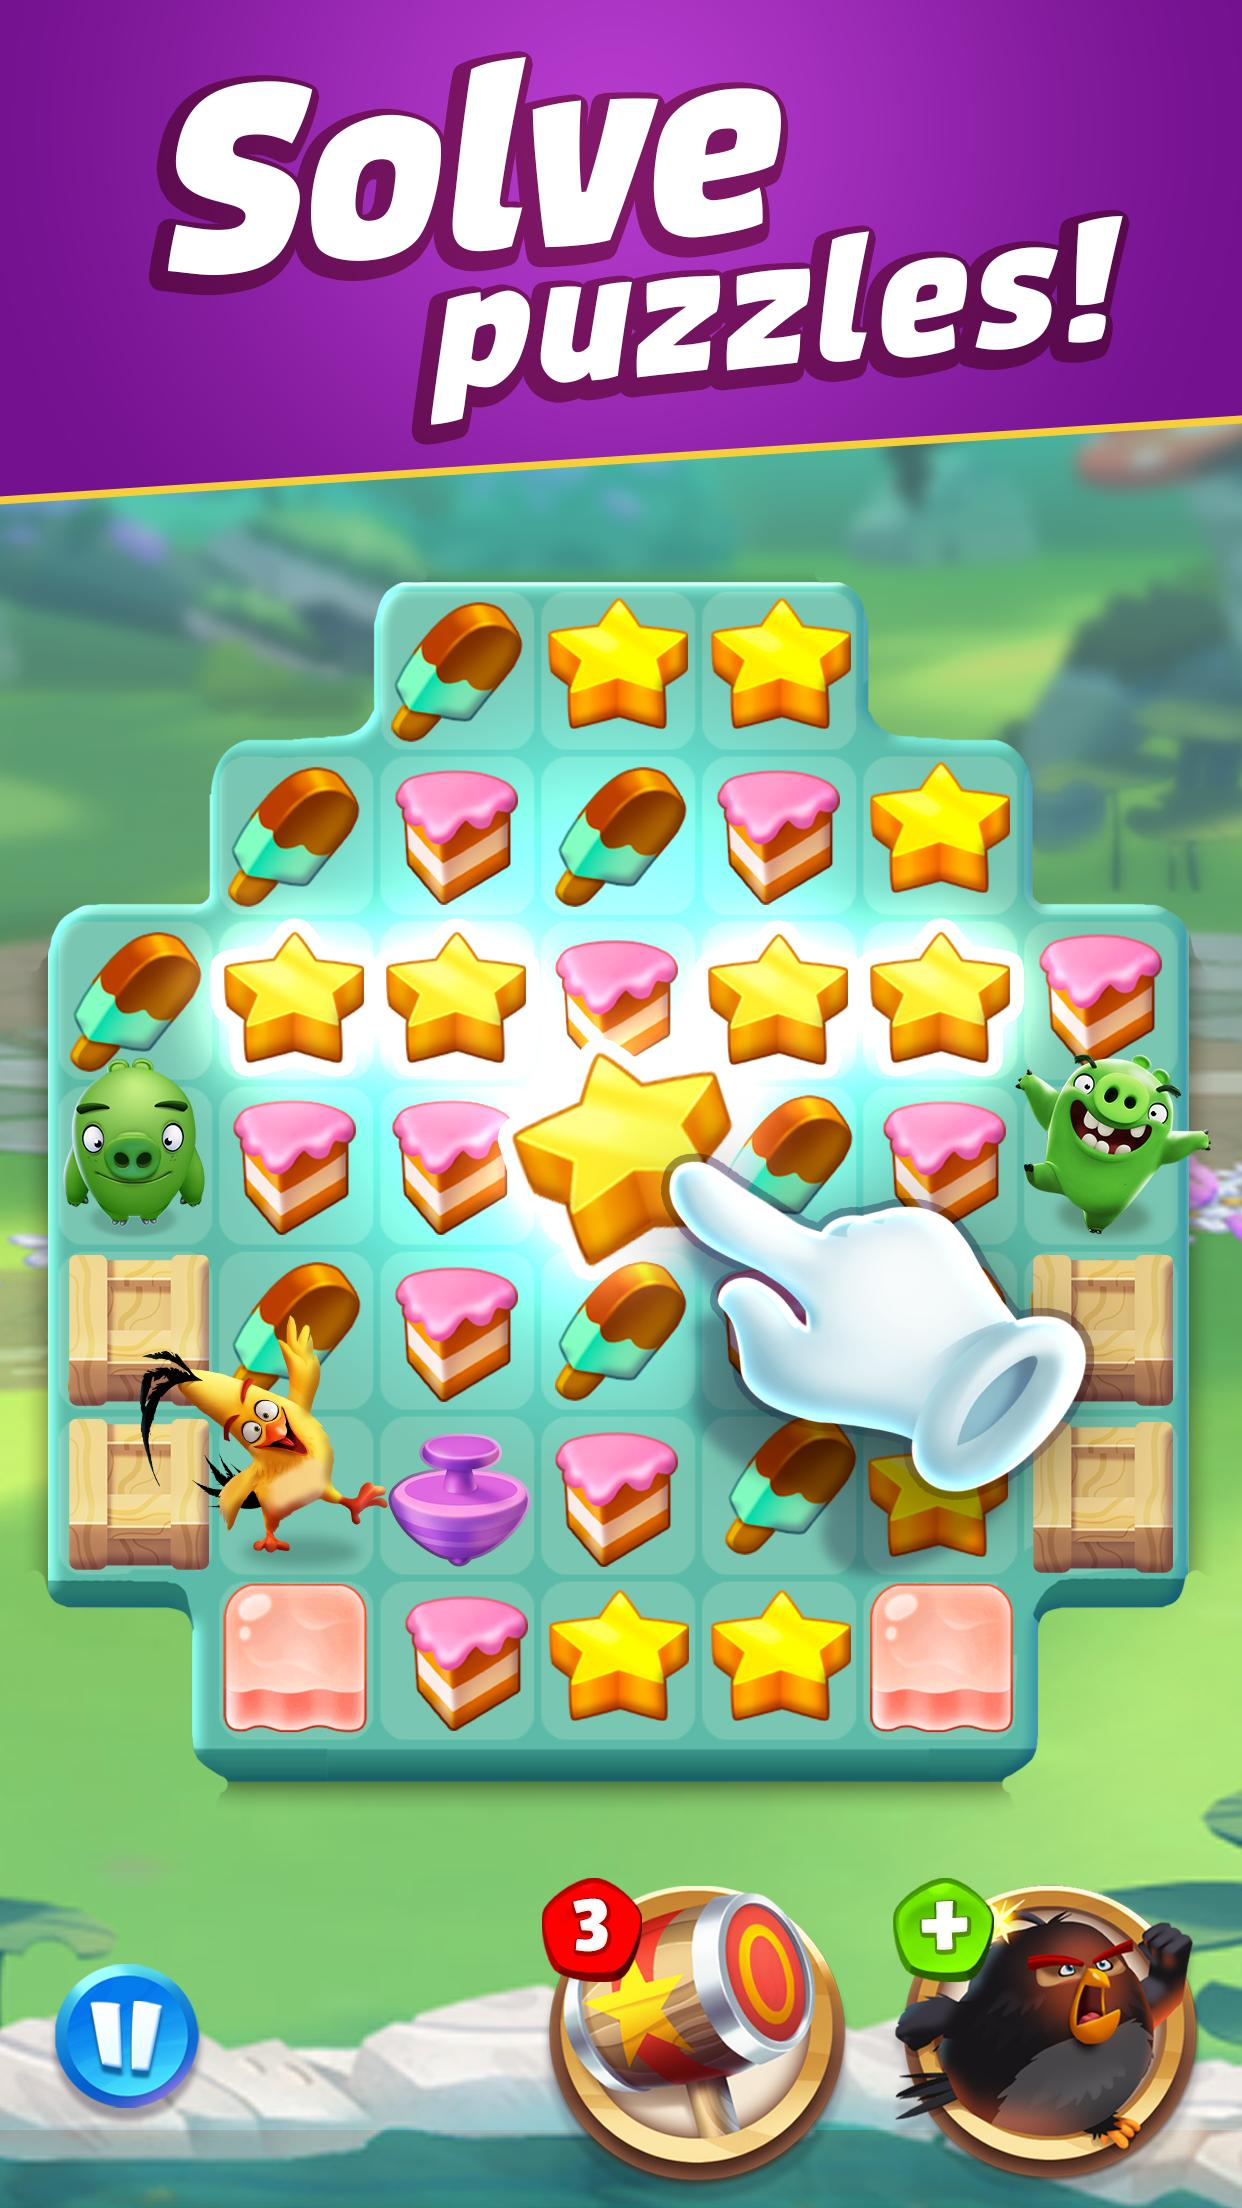 Angry Birds Match 3 3.1.0 Screenshot 2